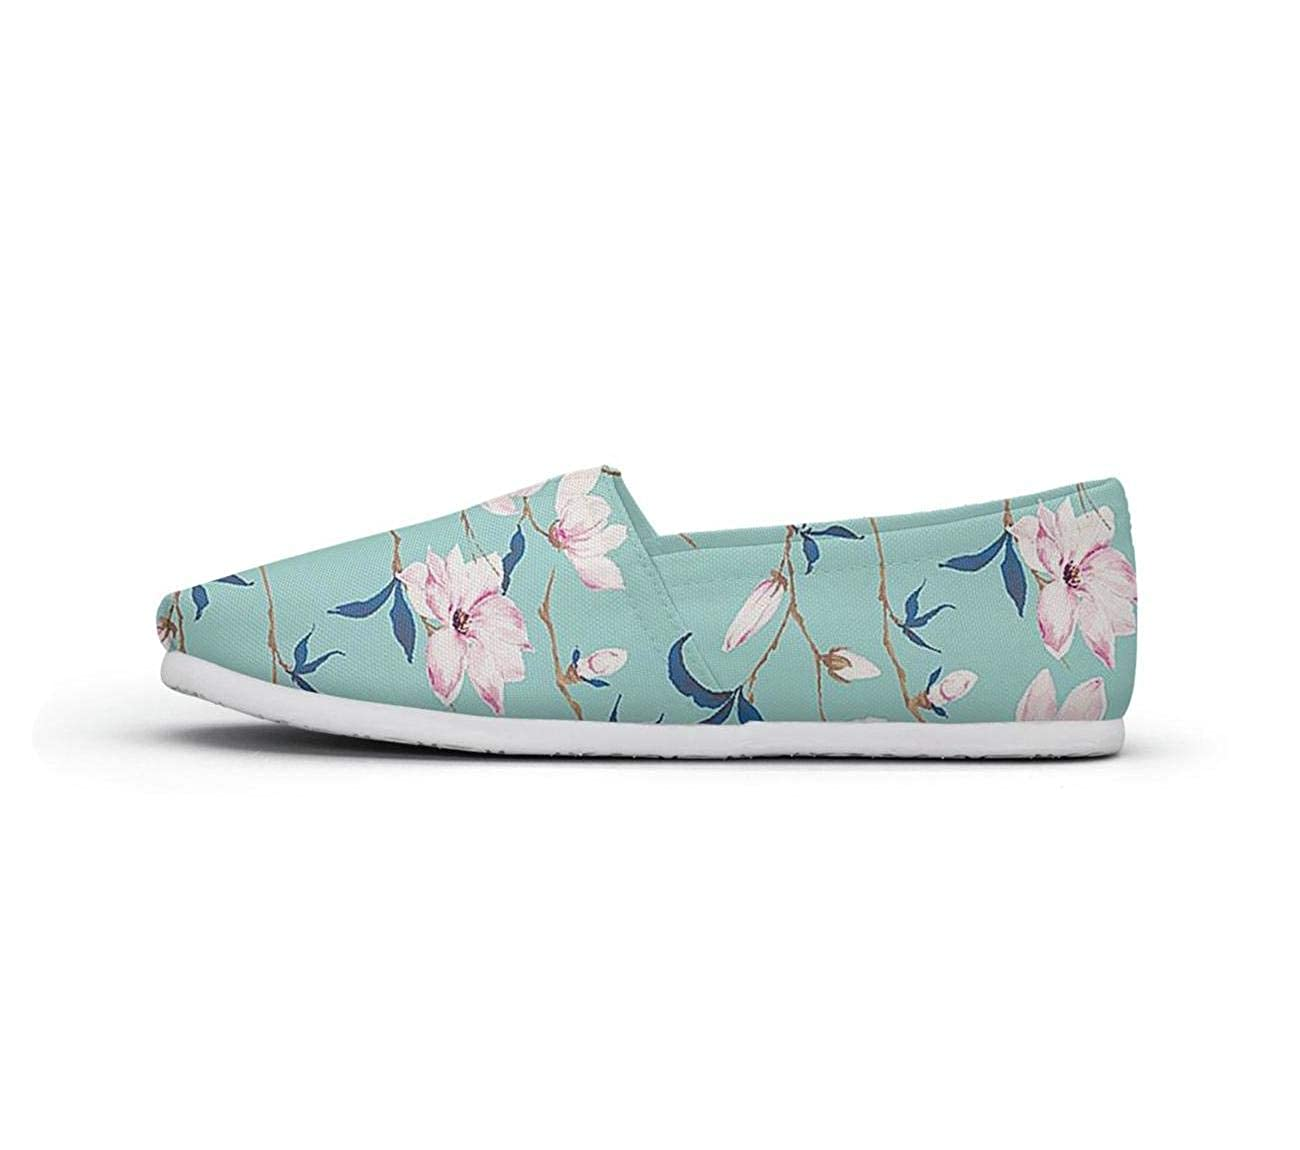 nkfbx Watercolor Red Heads Crane /& Cherry Flowers Classic Flat Trainers for Girls Exercise